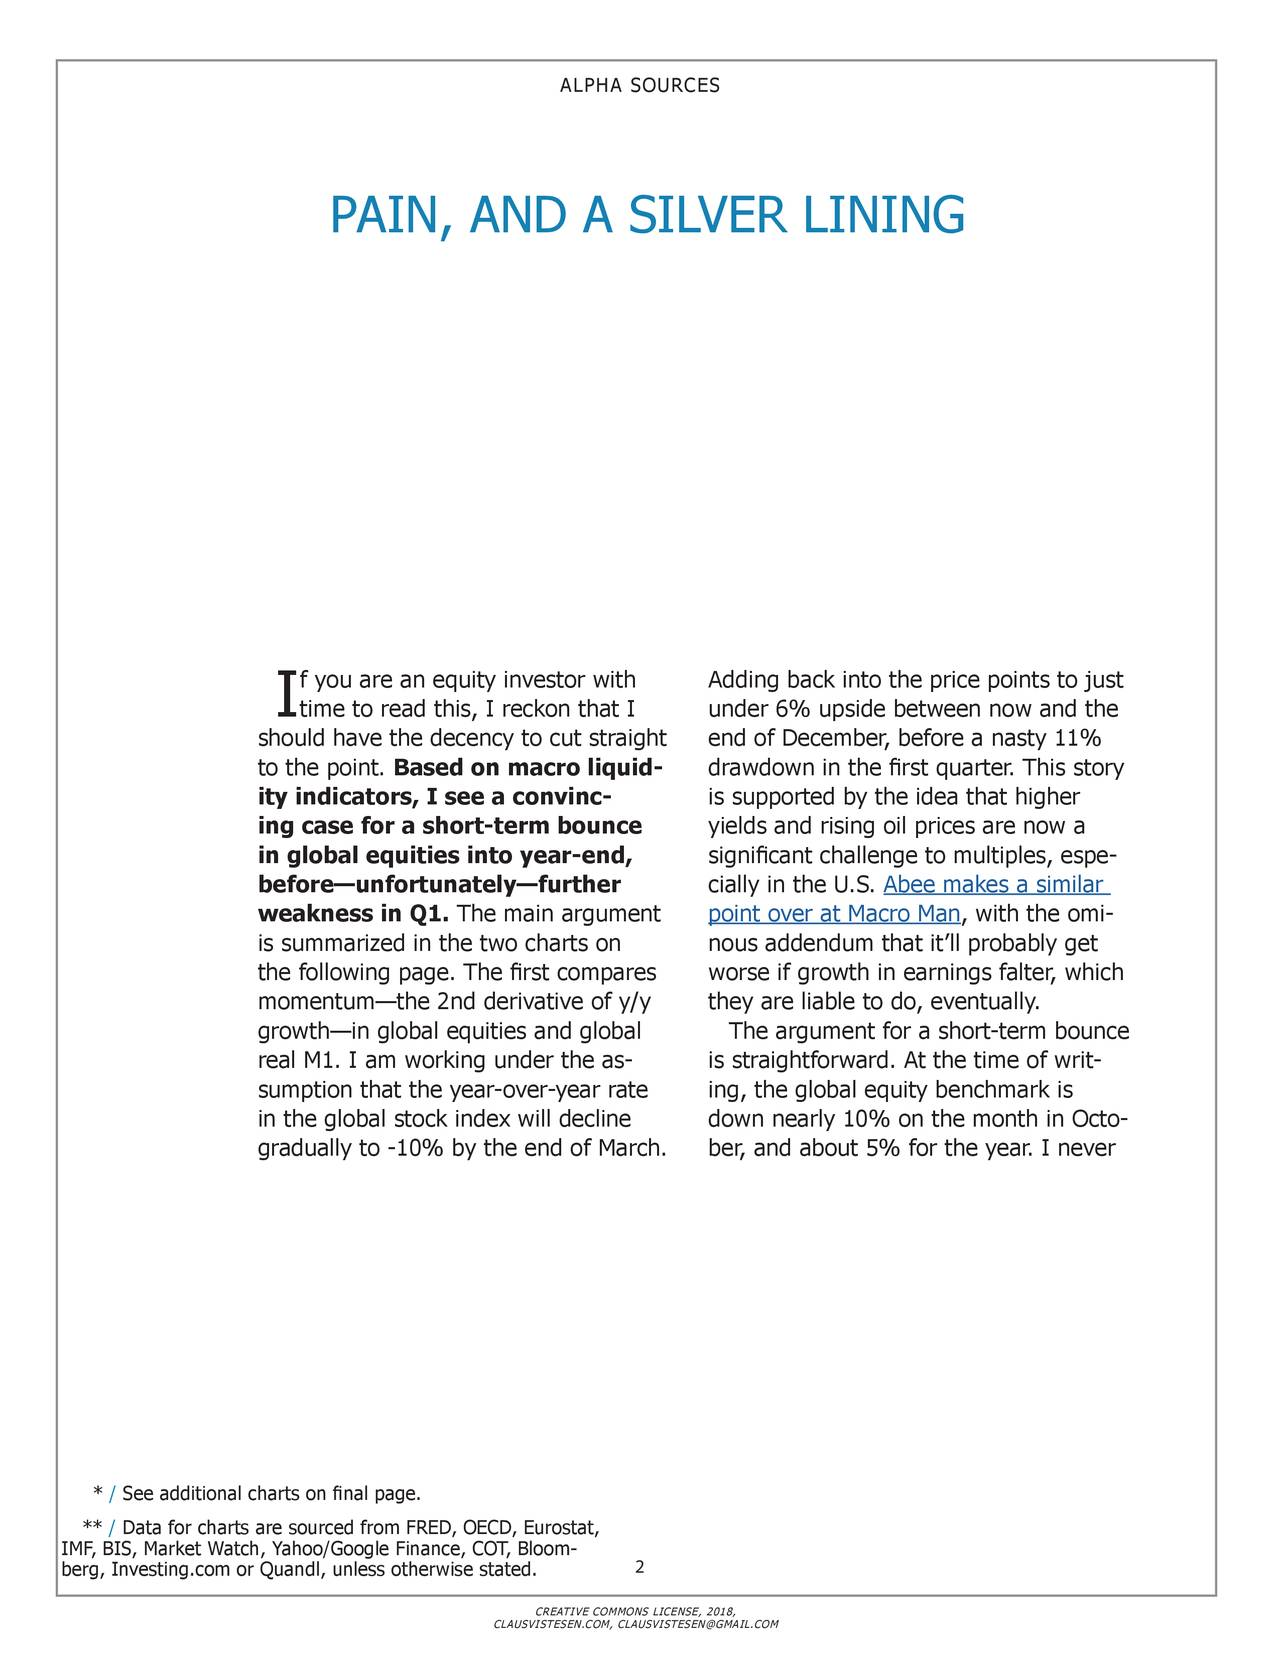 PAIN, AND A SILVER LINING f you are an equity investor with Adding back into the price points to just I time to read this, I reckon that I under 6% upside between now and the should have the decency to cut straight end of December, before a nasty 11% to the point. Based on macro liquid- drawdown in the first quarter. This story ity indicators, I see a convinc- is supported by the idea that higher ing case for a short-term bounce yields and rising oil prices are now a in global equities into year-end, significant challenge to multiples, espe- before—unfortunately—further cially in the U.S. Abee makes a similar weakness in Q1. The main argument point over at Macro Man, with the omi - is summarized in the two charts on nous addendum that it'll probably get the following page. The first compares worse if growth in earnings falter, which momentum—the 2nd derivative of y/y they are liable to do, eventually. growth—in global equities and global The argument for a short-term bounce real M1. I am working under the as- is straightforward. At the time of writ - sumption that the year-over-year rate ing, the global equity benchmark is in the global stock index will decline down nearly 10% on the month in Octo- gradually to -10% by the end of March. ber, and about 5% for the year. I never * / See additional charts on final page. ** / Data for charts are sourced from FRED, OECD, Eurostat, IMF, BIS, Market Watch, Yahoo/Google Finance, COT, Bloom2 berg, Investing.com or Quandl, unless otherwise stated. CREATIVE COMMONS LICENSE, 2018, CLAUSVISTESEN.COM, CLAUSVISTESEN@GMAIL.COM